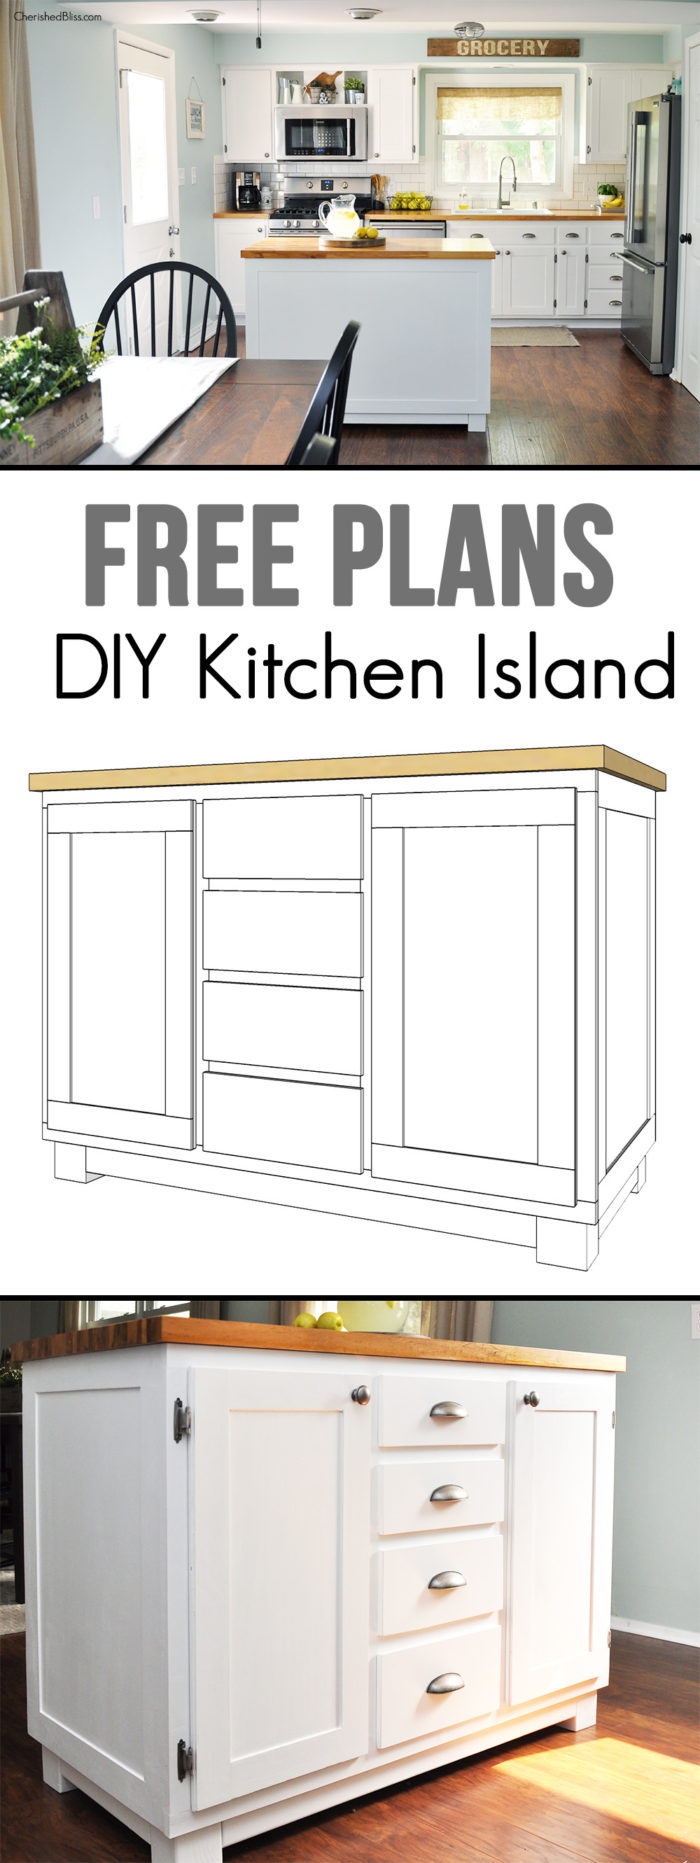 How to build a diy kitchen island cherished bliss Kitchen island plans